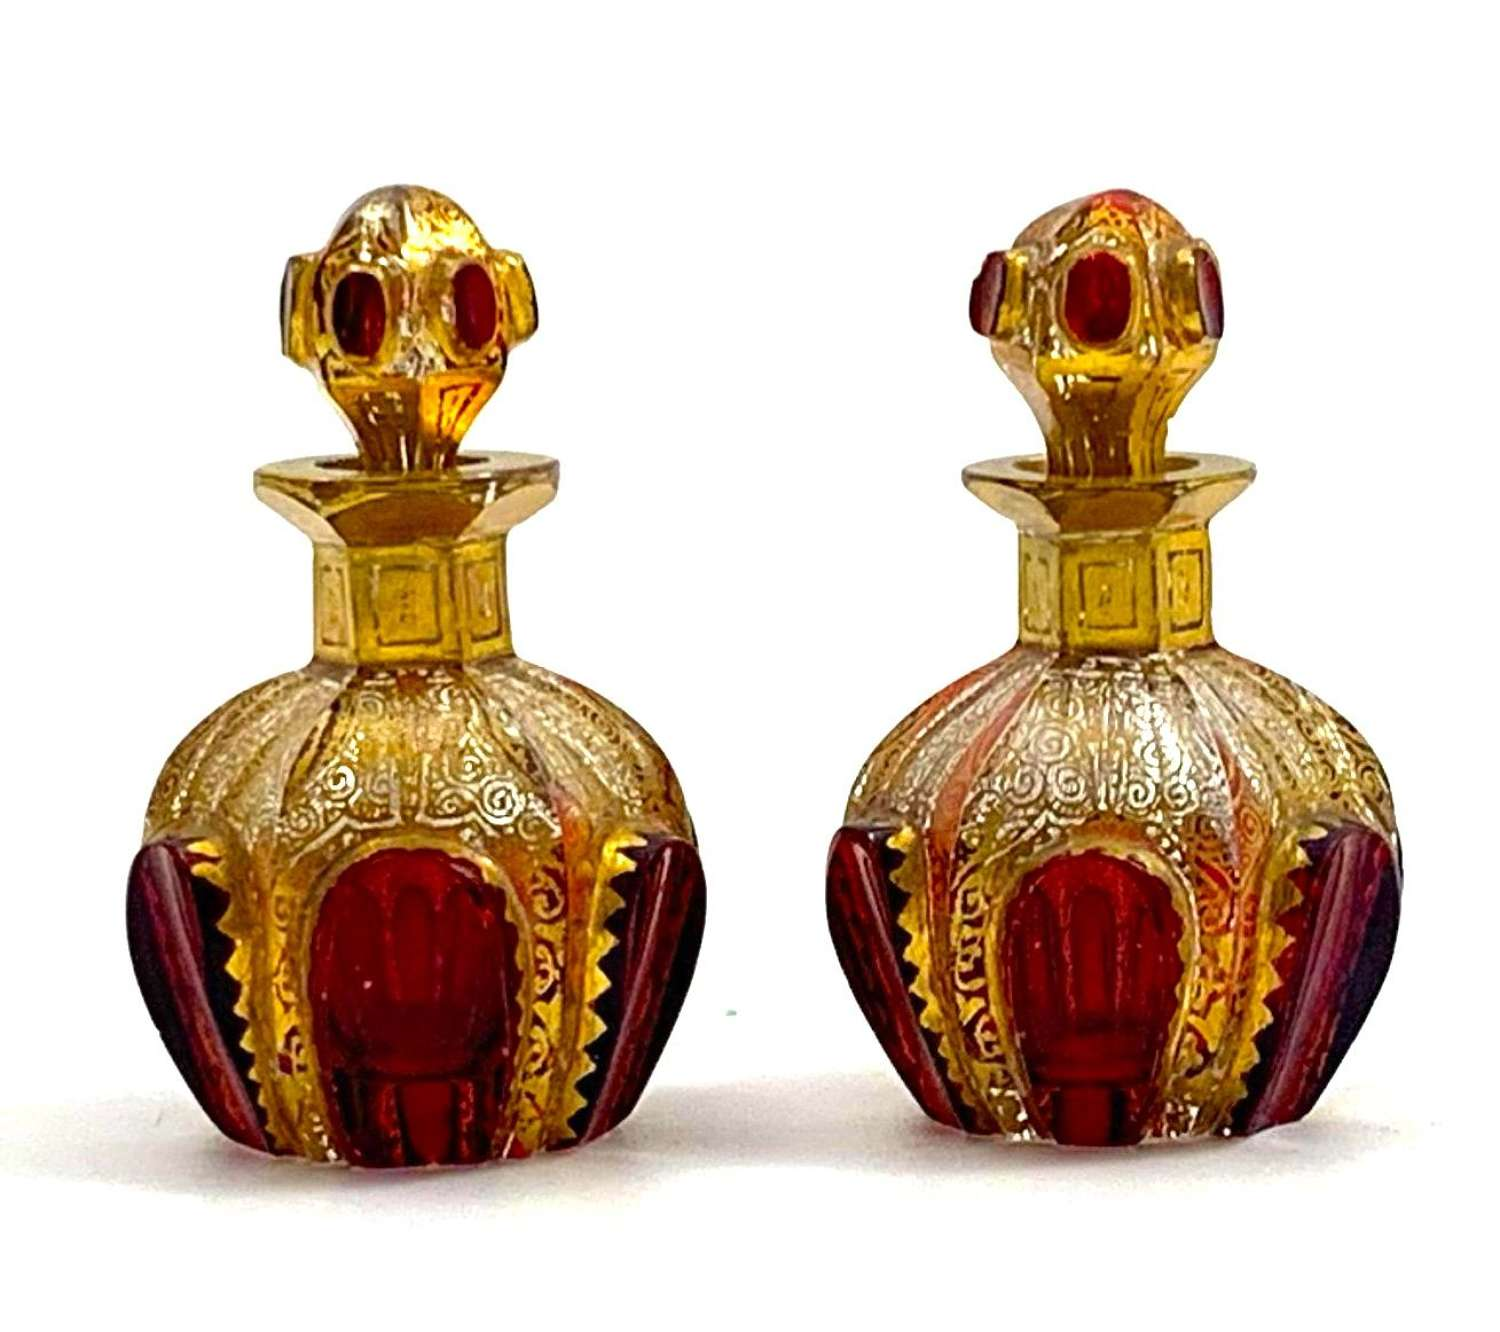 Pair of Antique Miniature MOSER Perfume Bottles with Ruby Cabochons